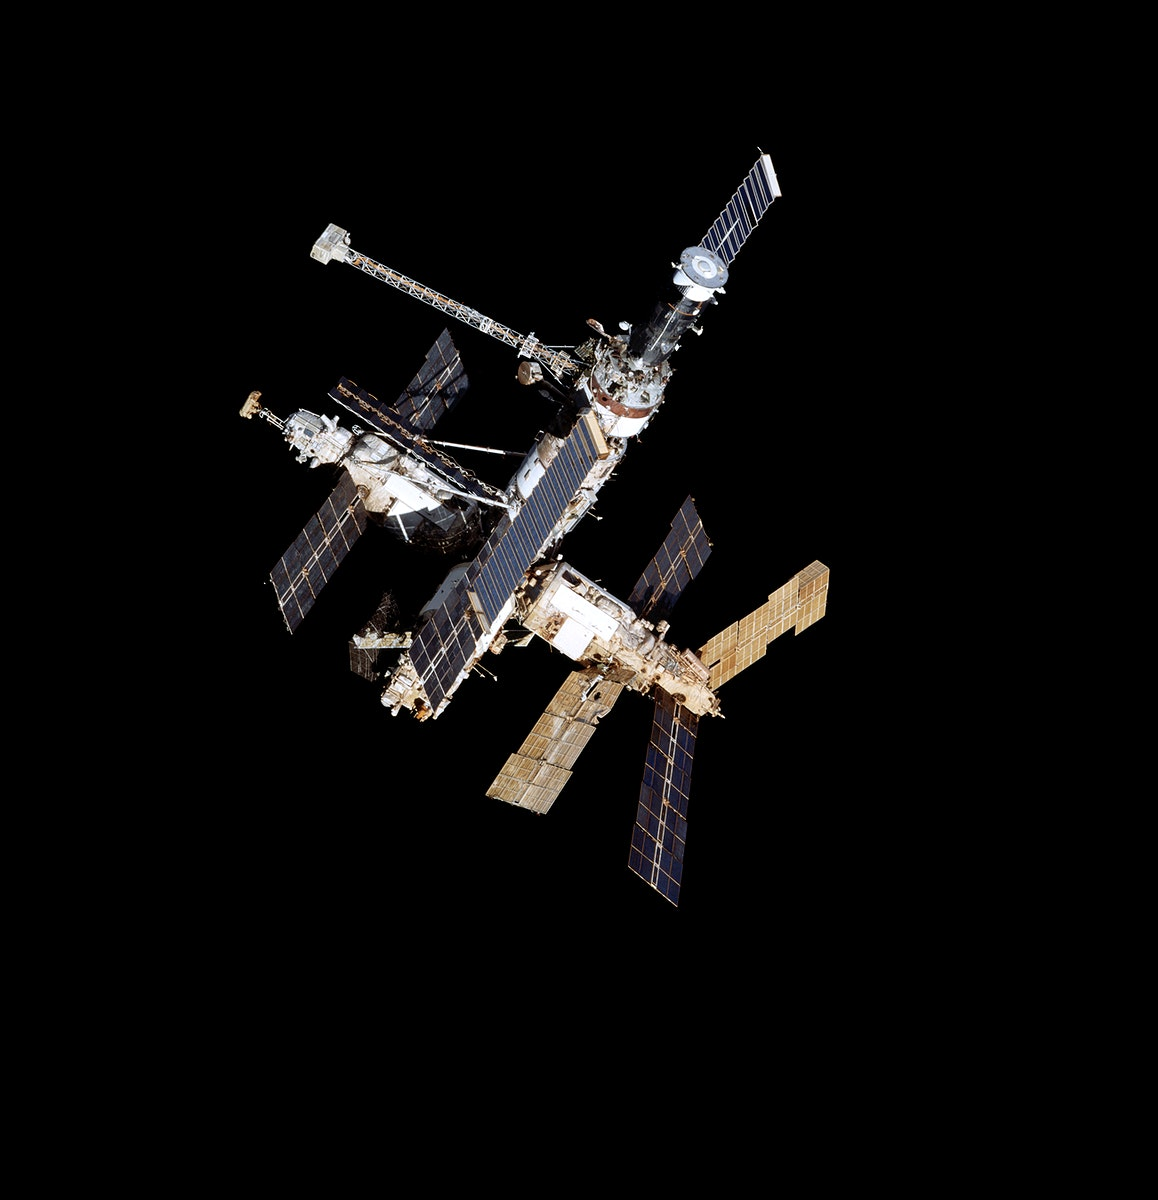 Full views of Mir Space Station after undocking during flyaround. Original from NASA. Digitally enhanced by rawpixel.